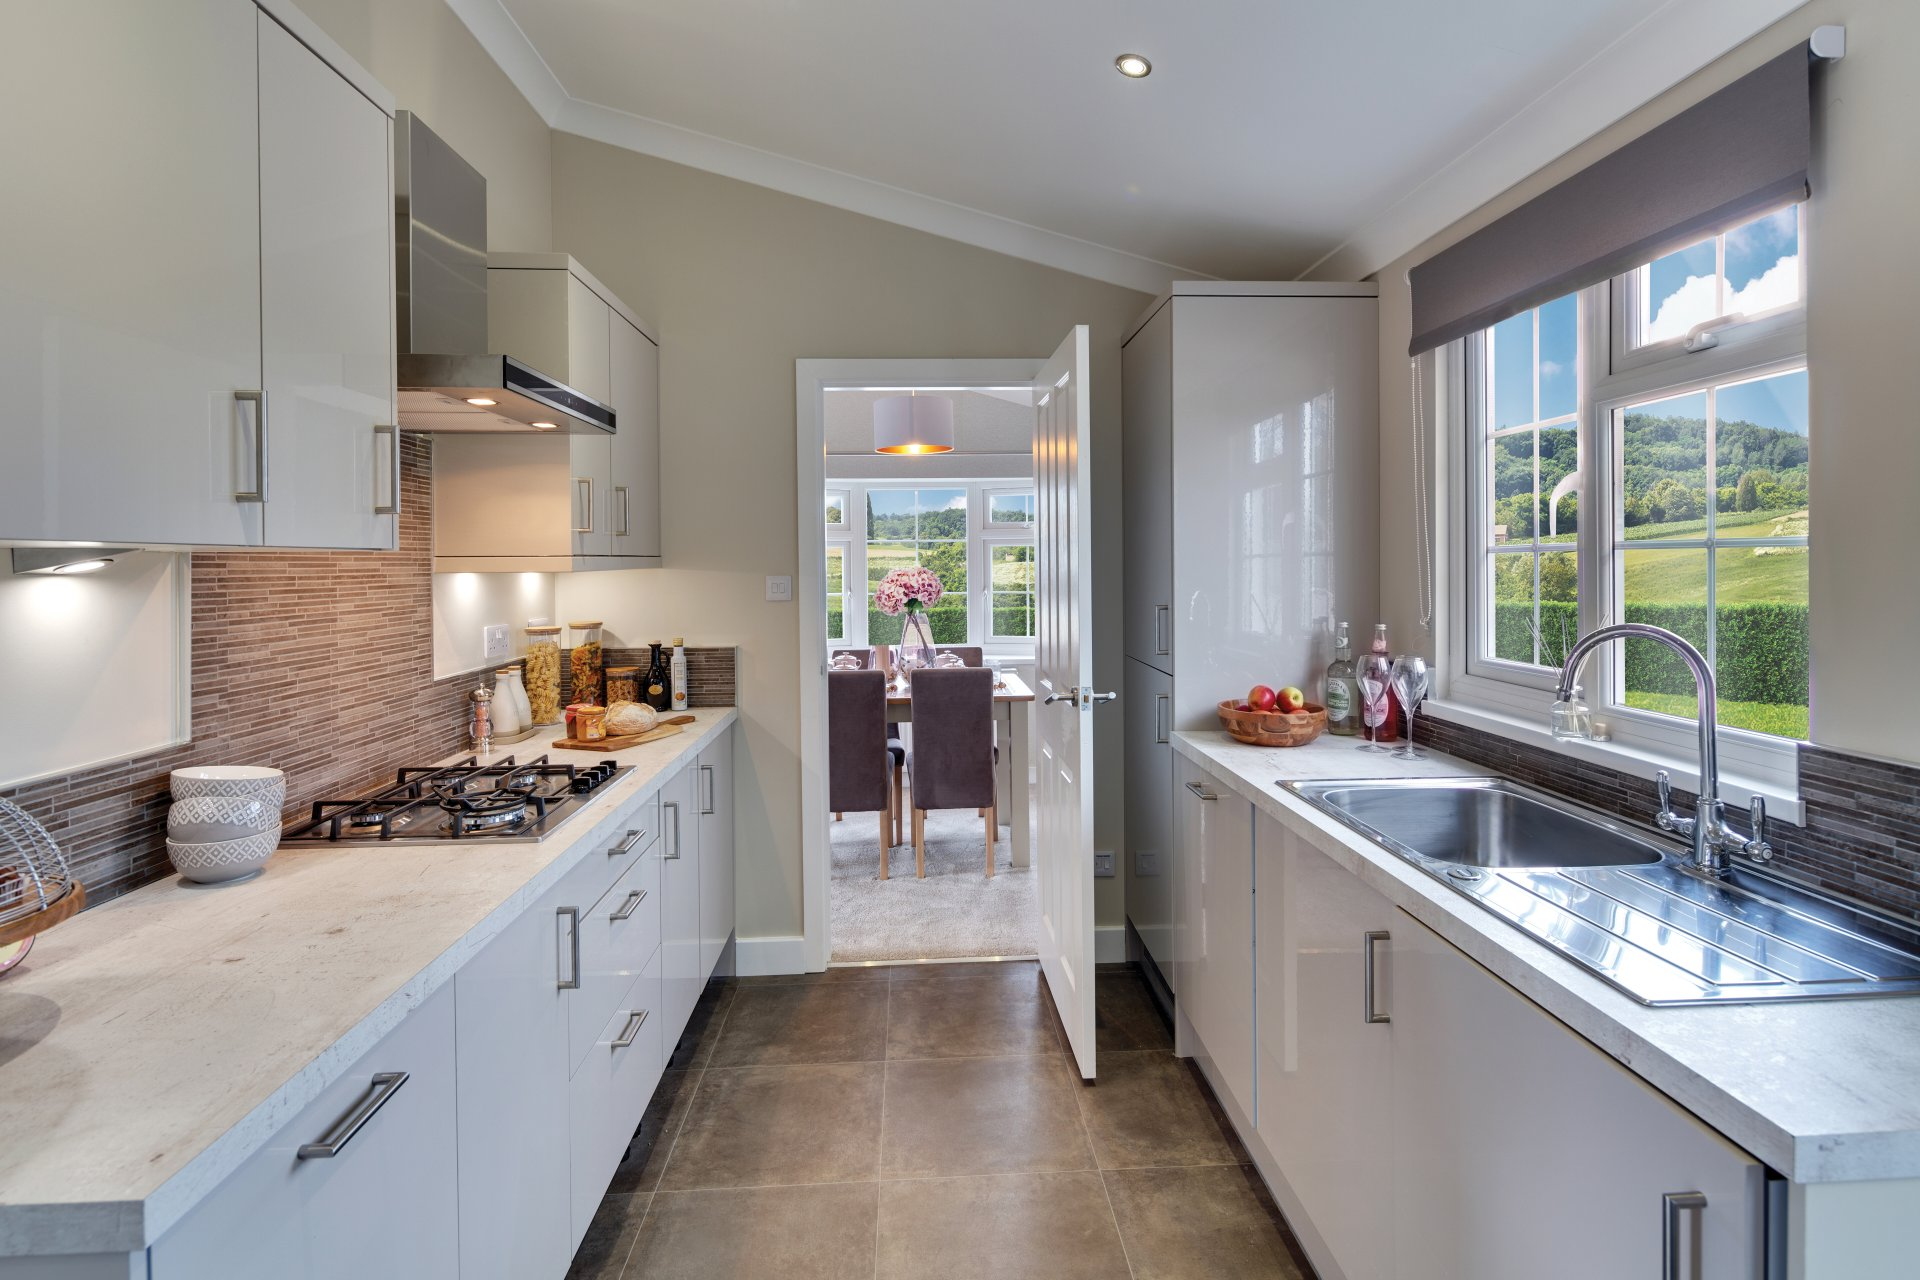 Hazlewood kitchen interior.